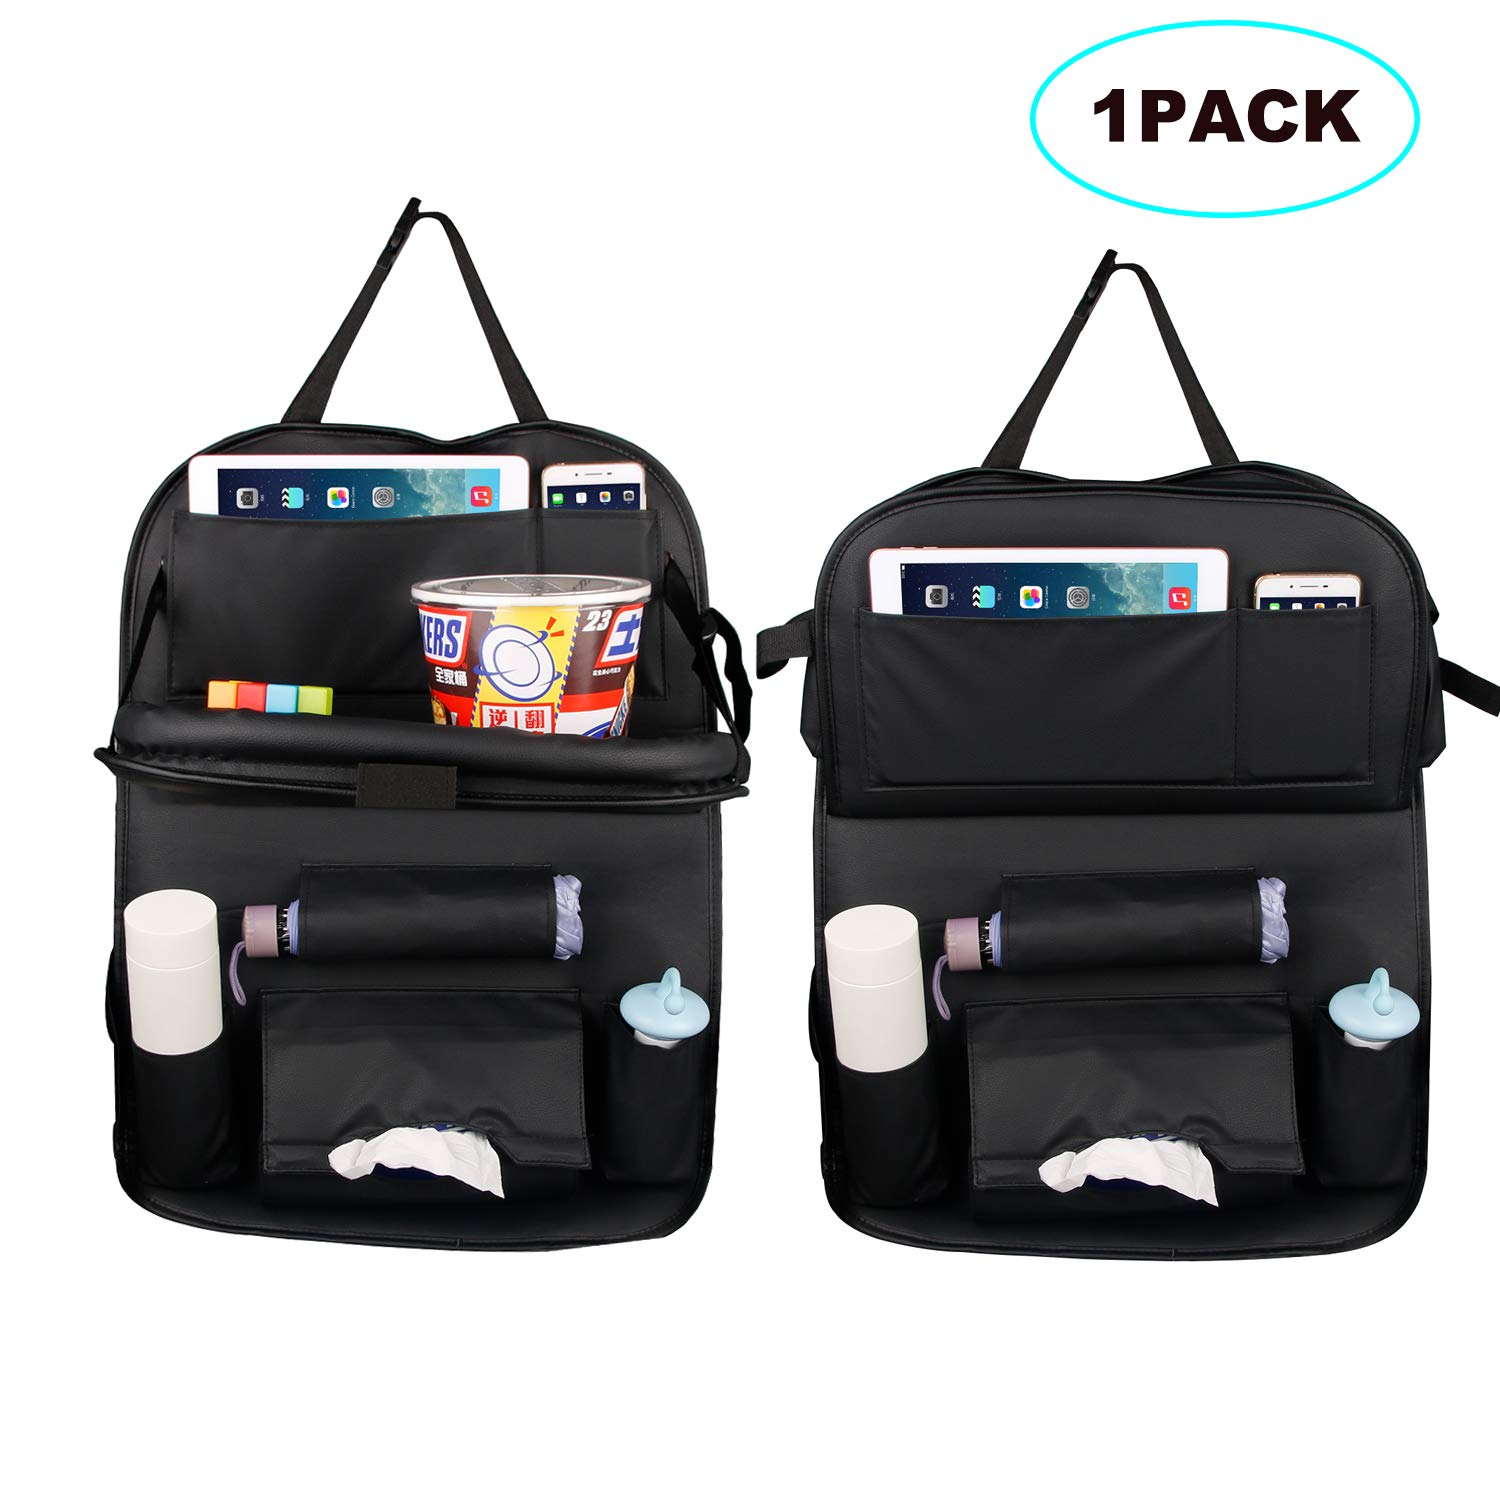 STYLINGCAR Car Back Seat Organiser Car Organisers Seat Back Protectors Cover with Holder Multi Pockets for Kids Toys Bottles Snacks (1PACK)